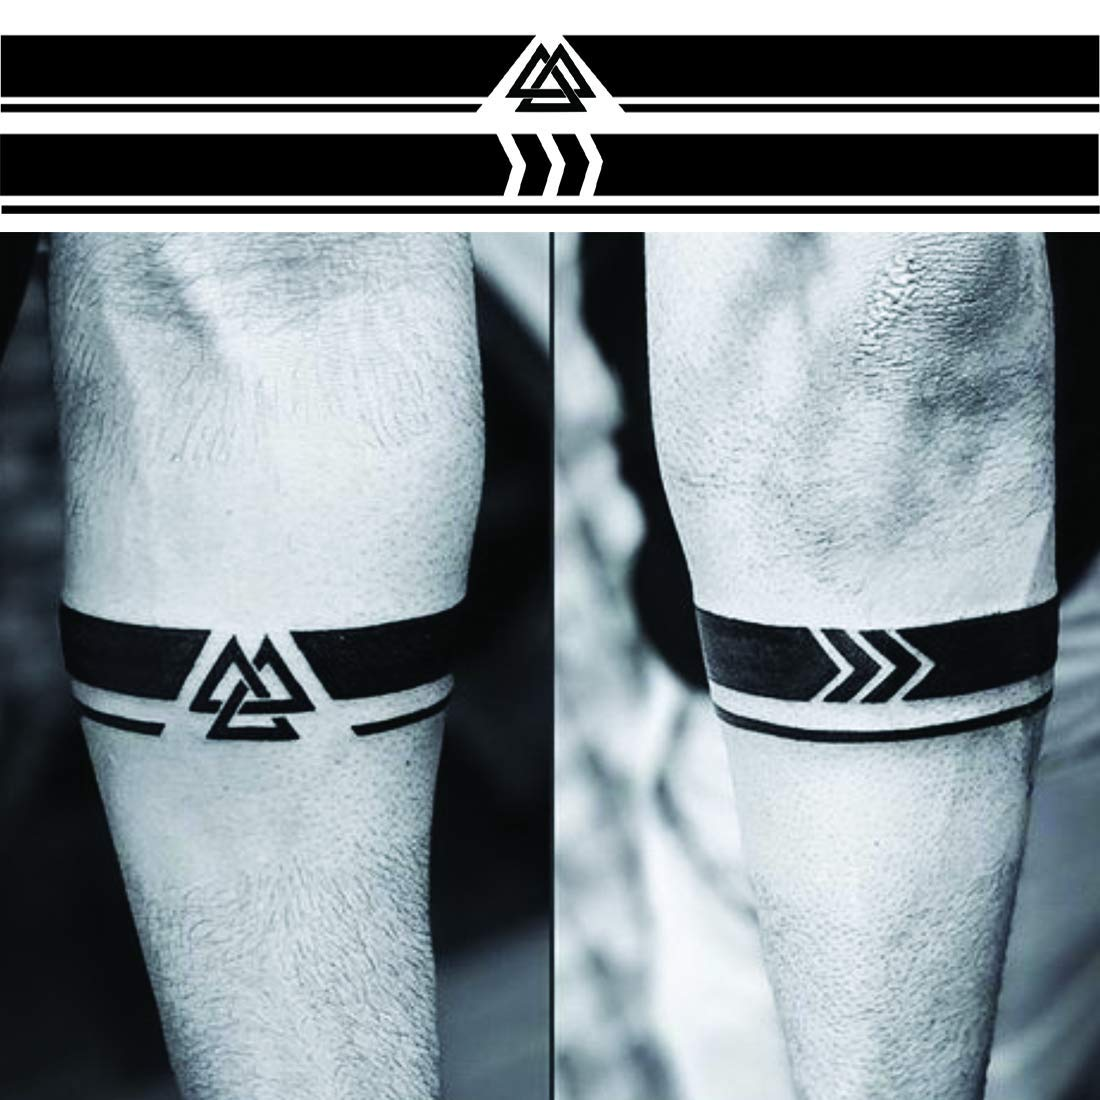 Voorkoms Arrow Triangle Armband Hand Band Men And Women Waterproof Temporary Body Tattoo Amazon In Beauty